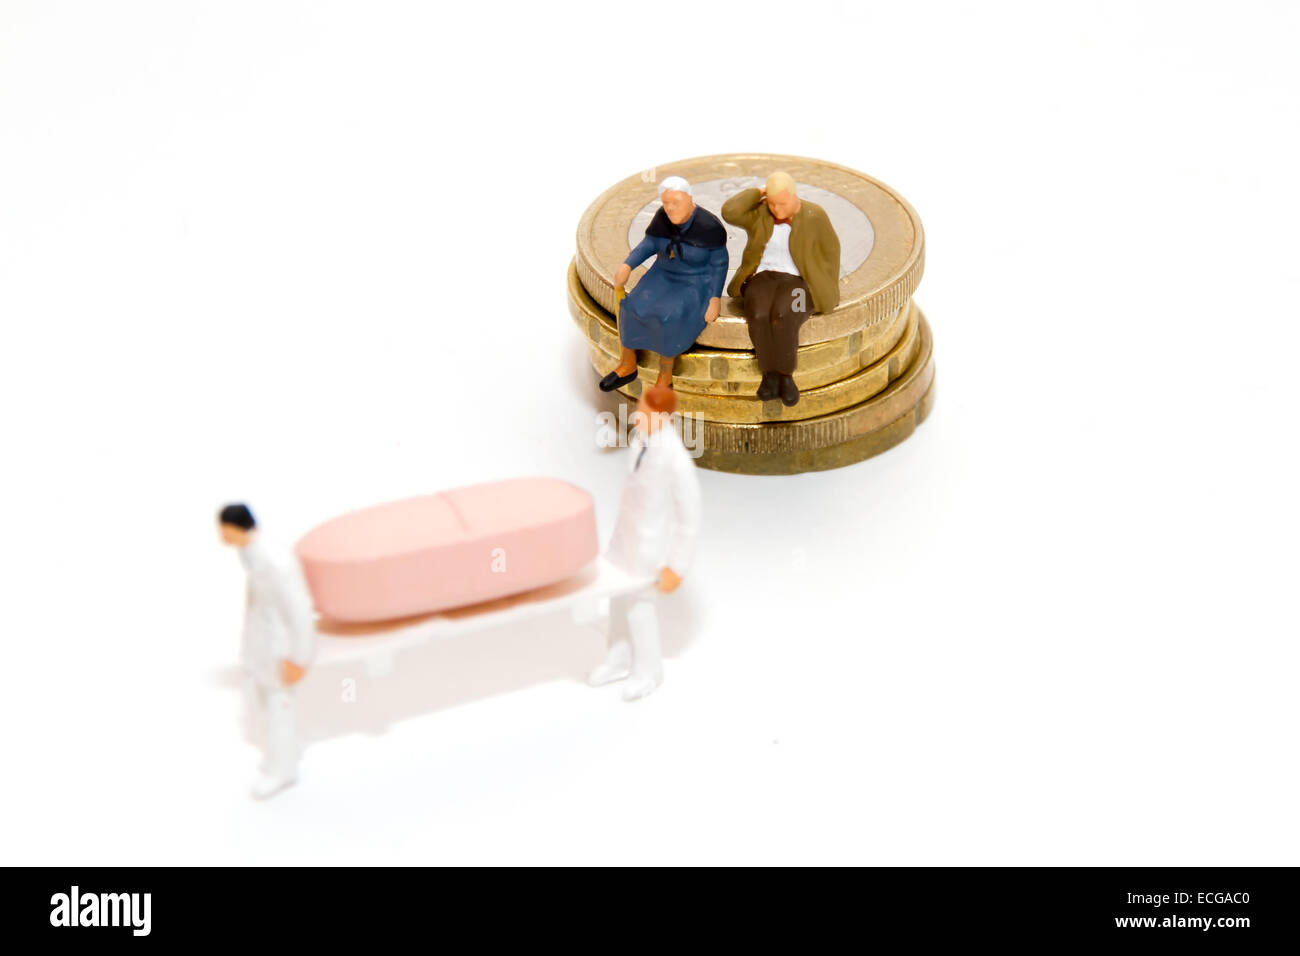 Seniors, costs, medication - Stock Image